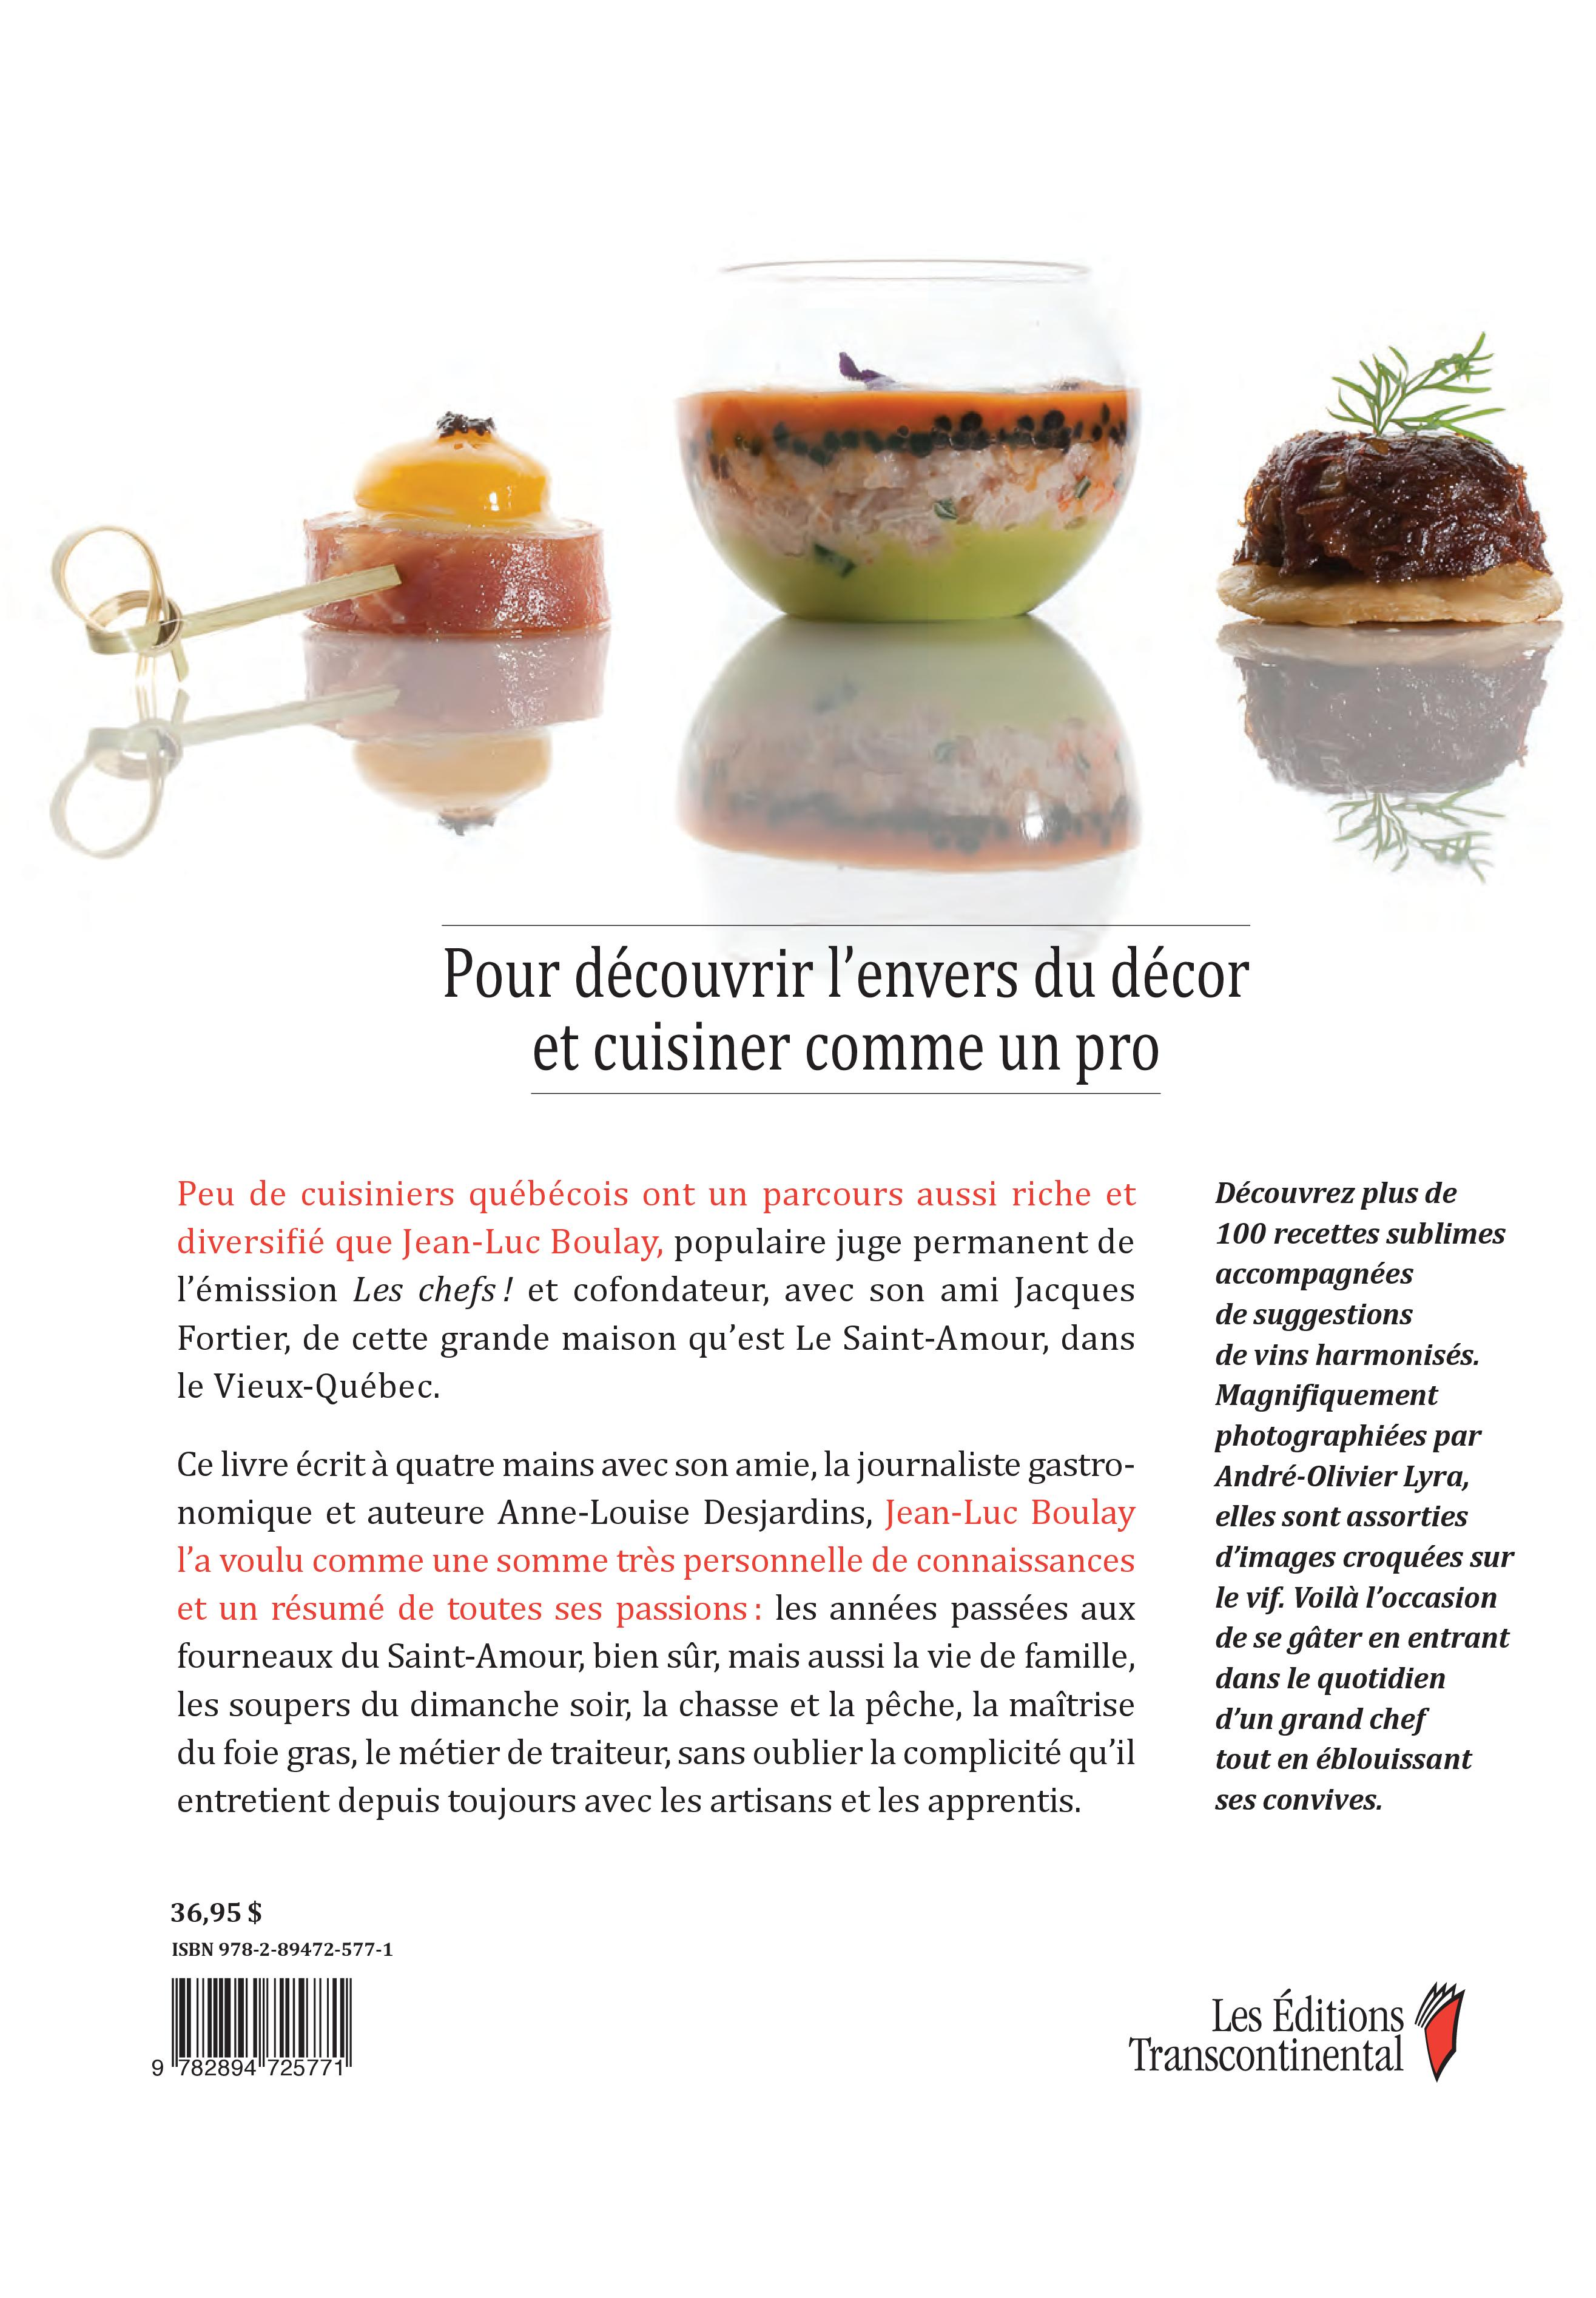 L'univers gourmand de Jean-Luc Boulay - Jean-Luc Boulay revers